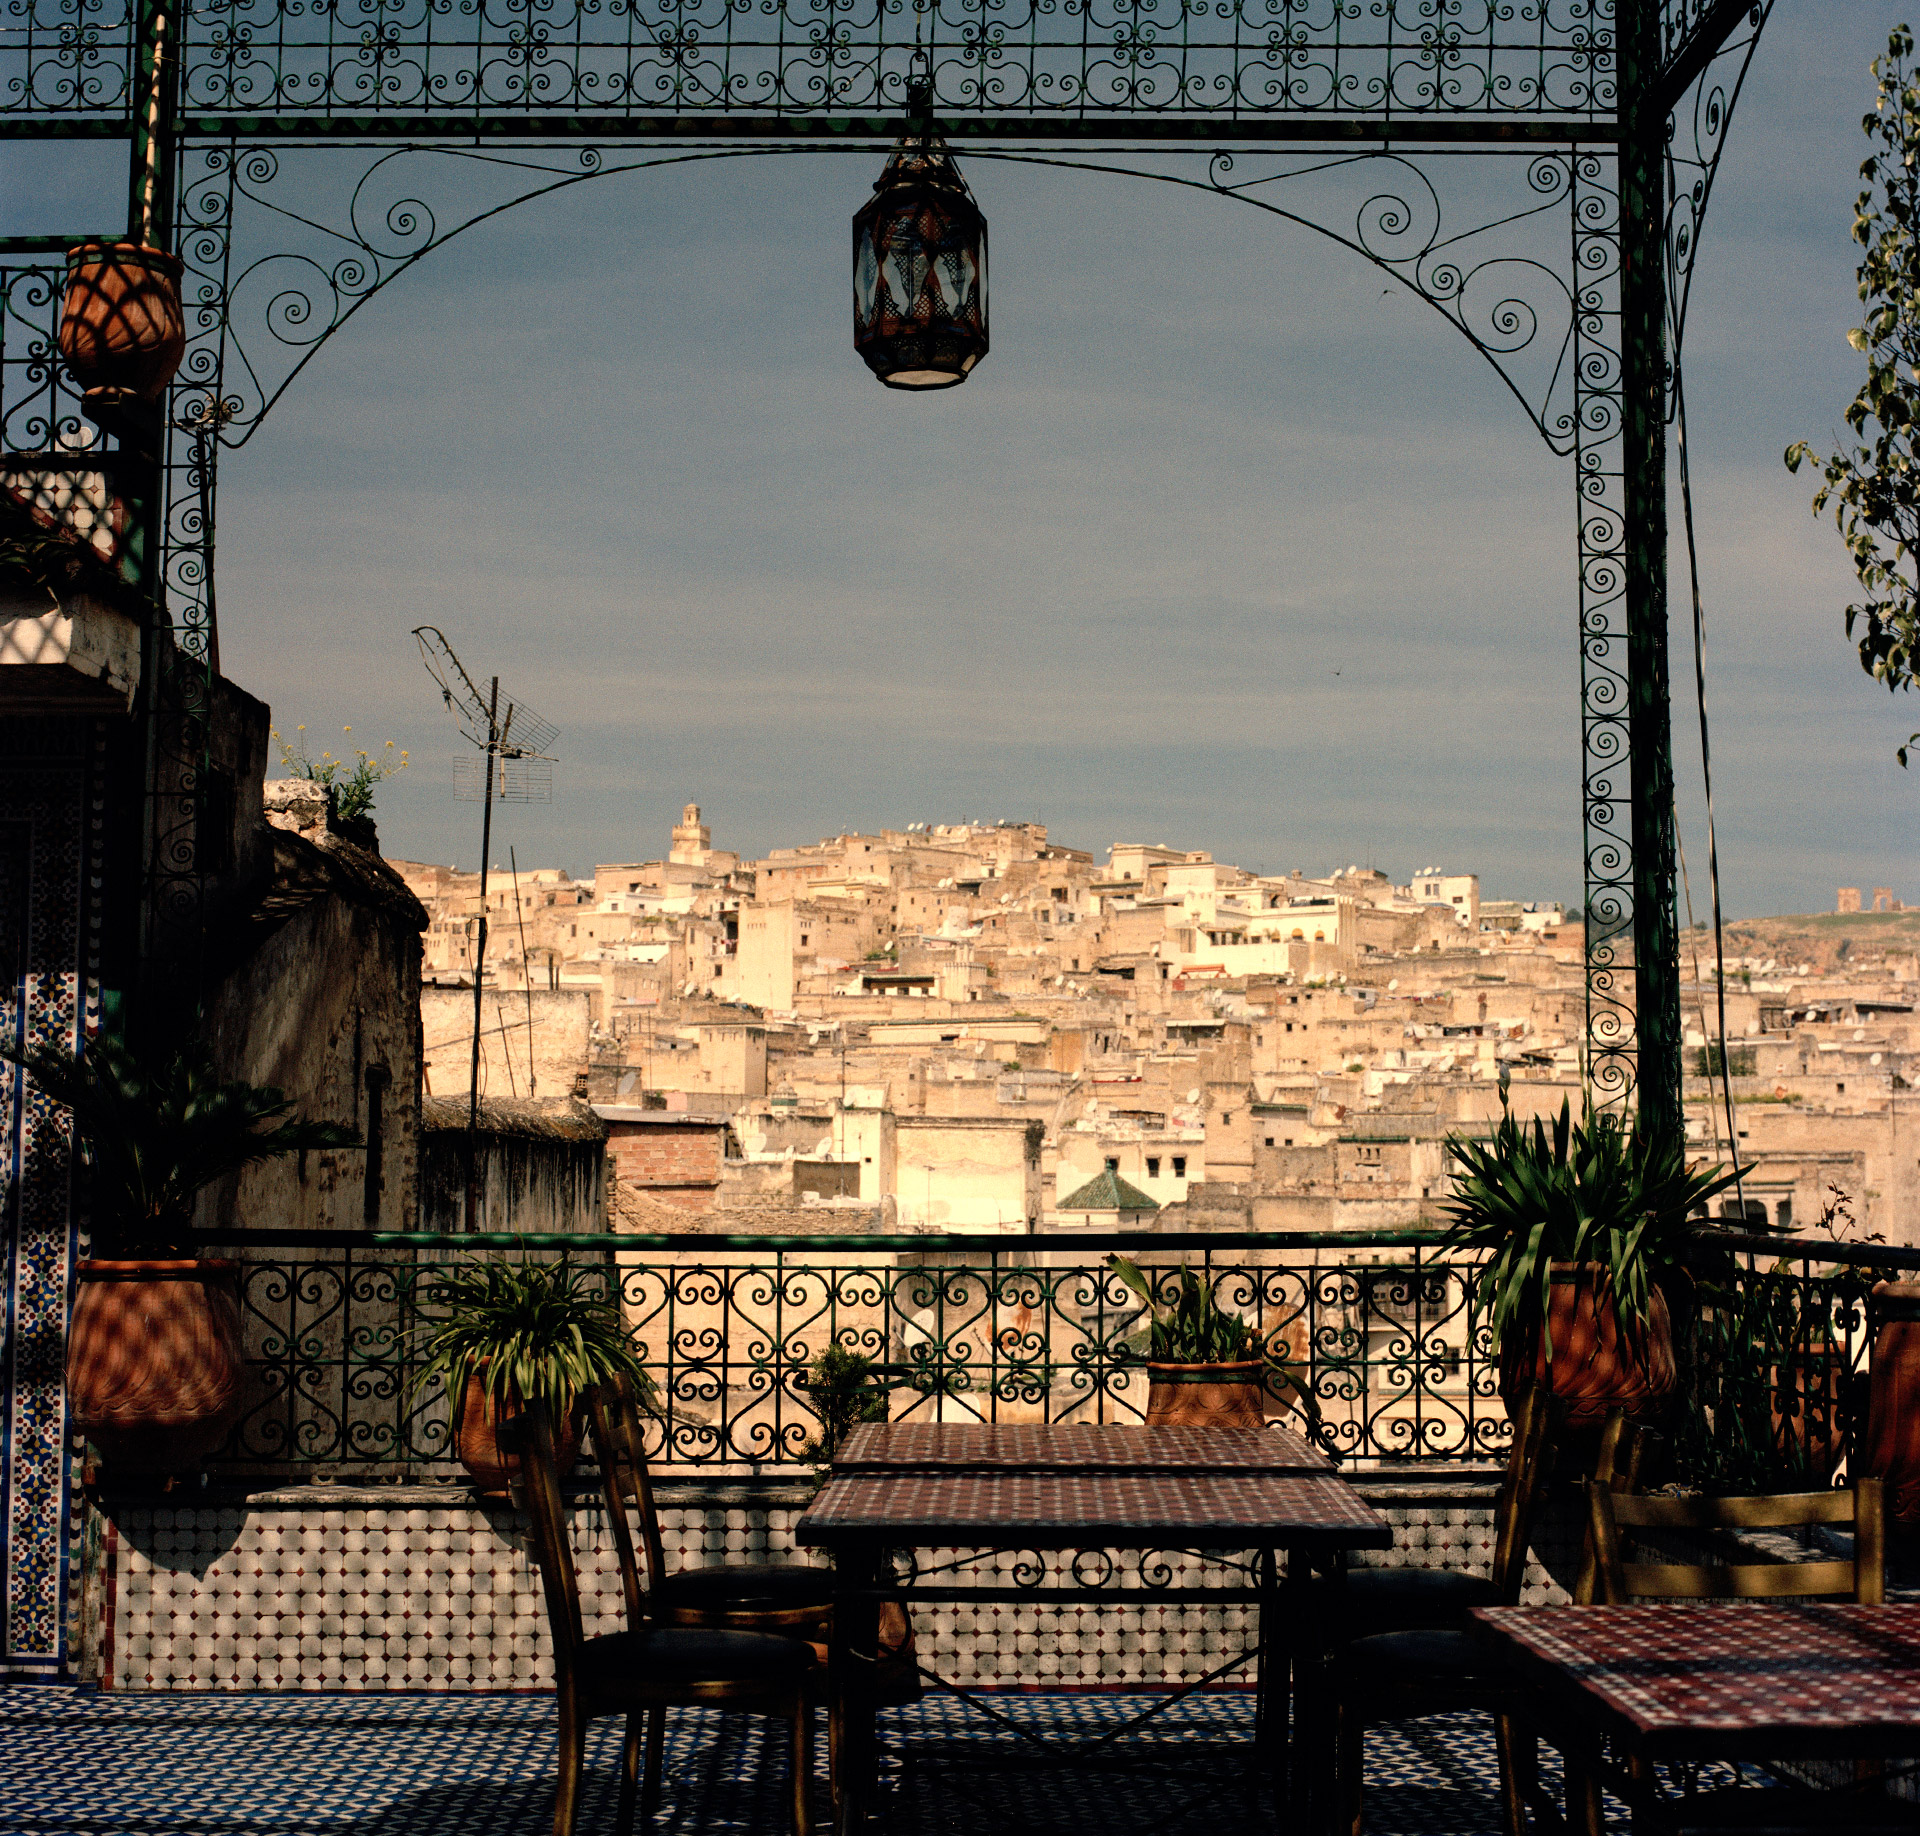 The old Medina quarters of Fez in Morocco